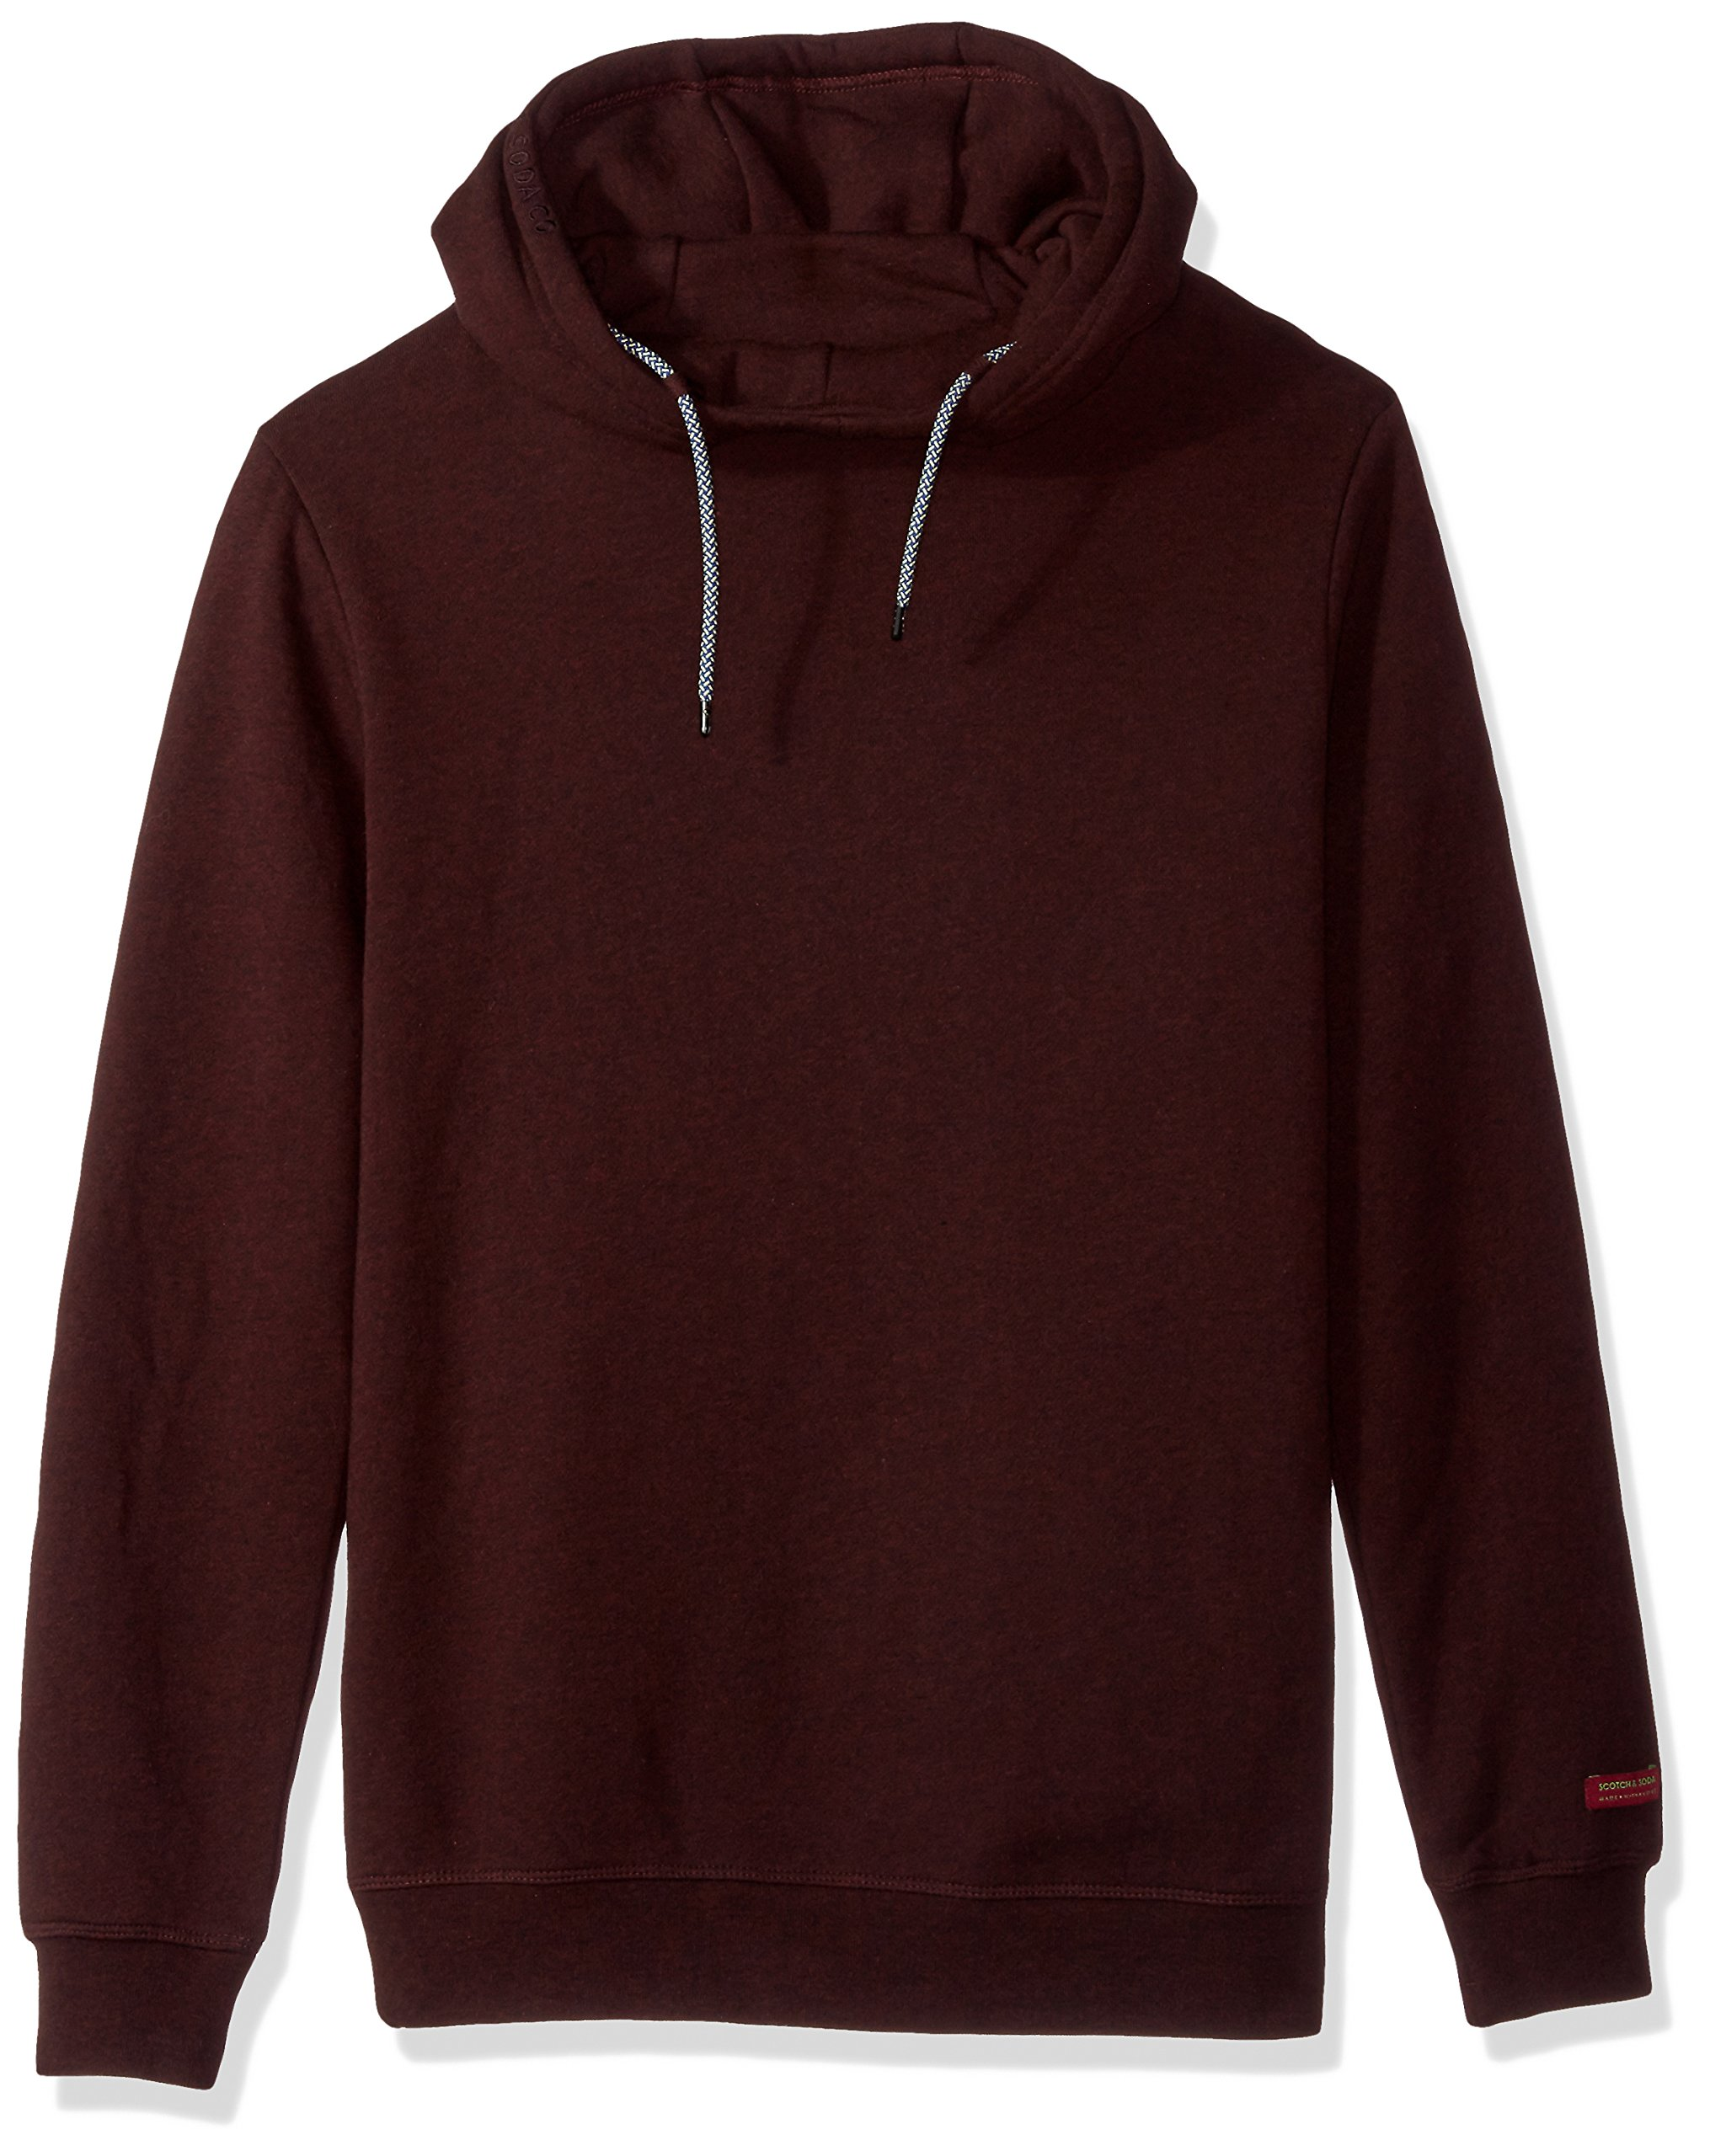 Scotch & Soda Men's Hooded Sweat In Brushed Felpa Quality With Contrast Inside, Combo b, L